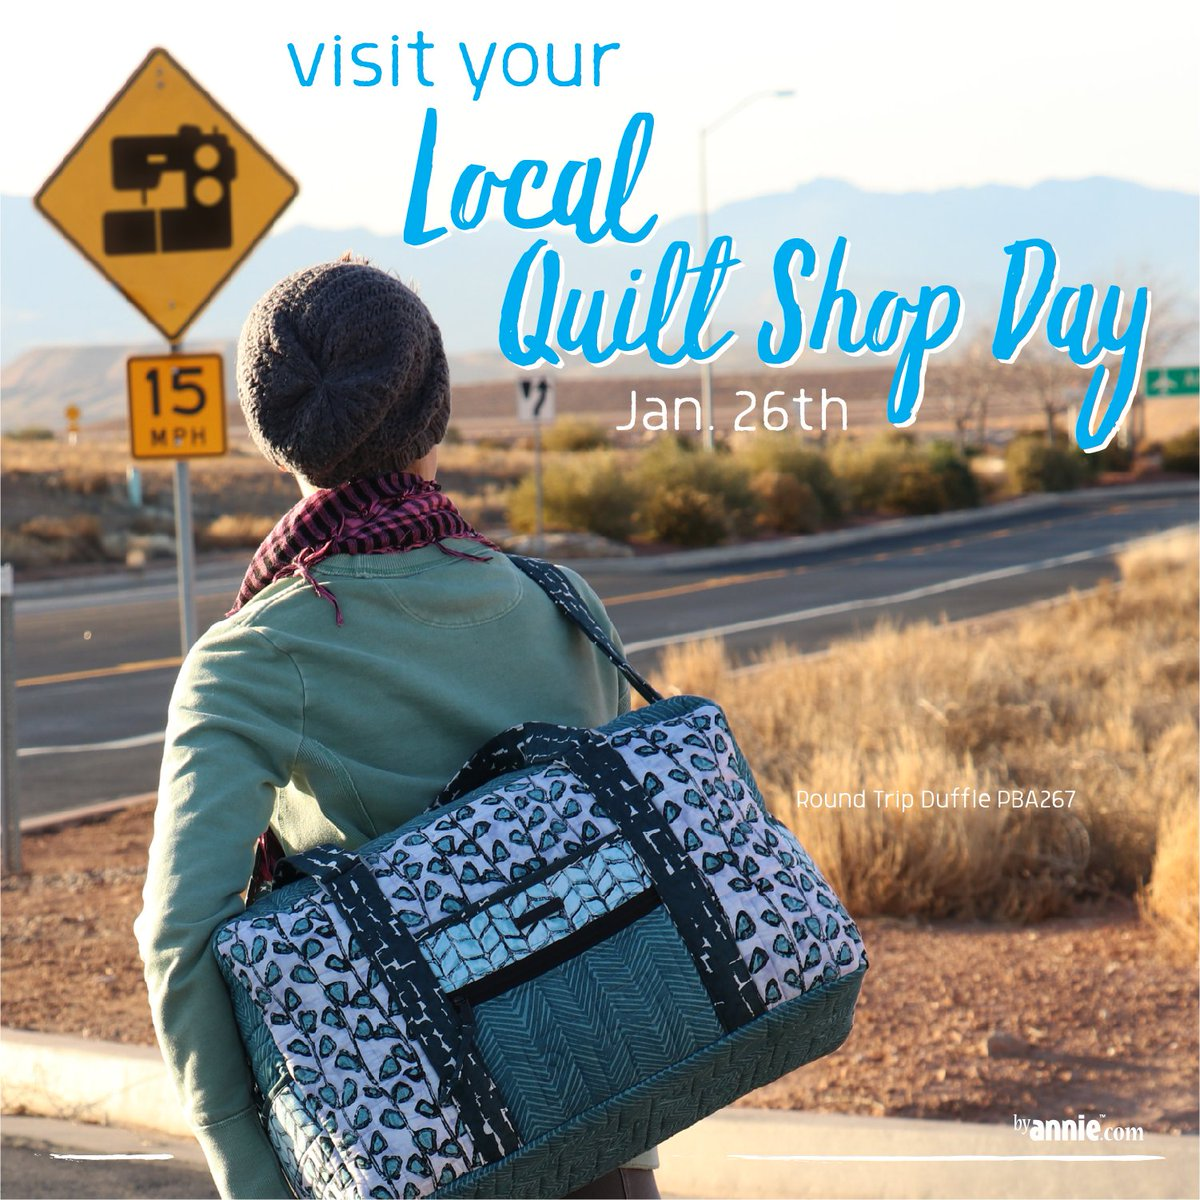 Did you vote for your local quilt shop? Win on Local Quilt Shop Day! - http://eepurl.com/gfklKr